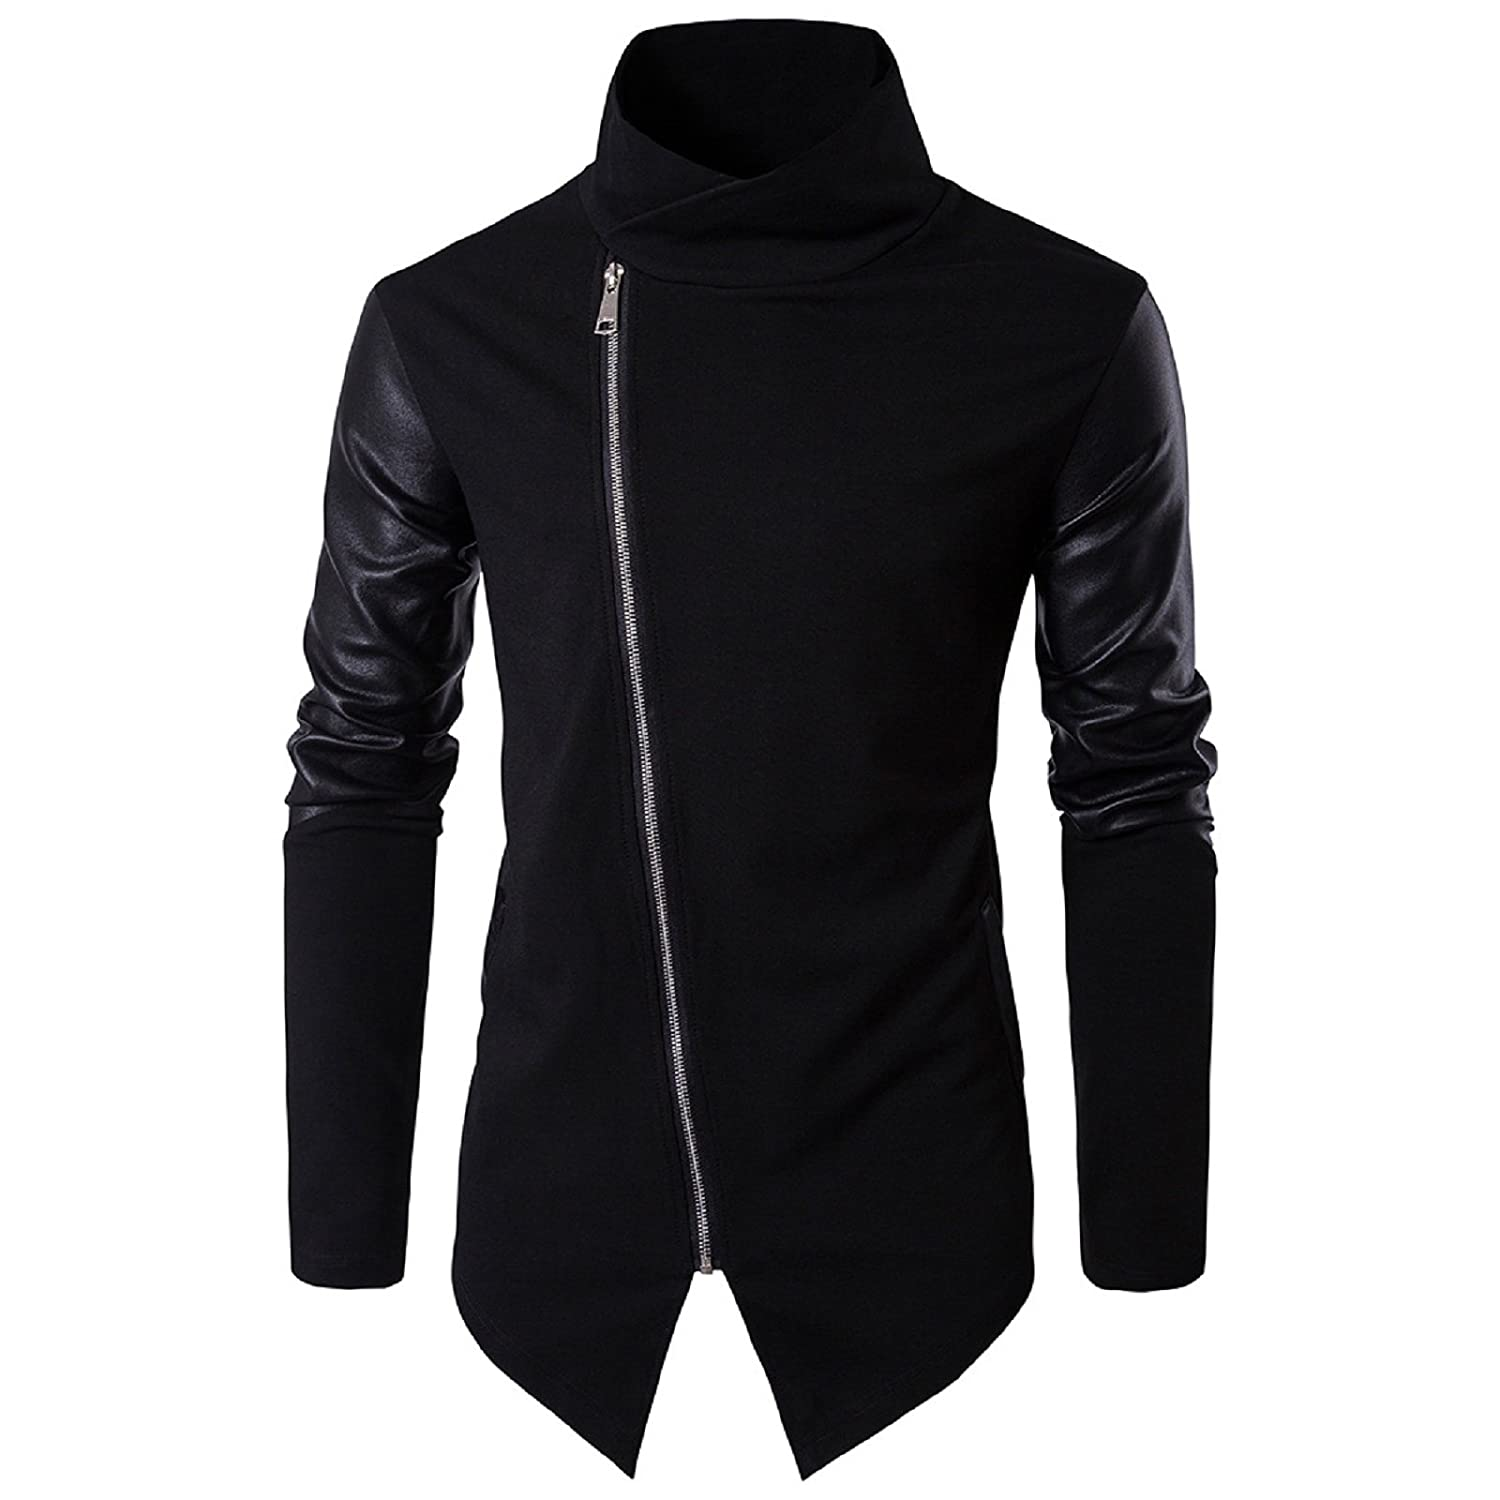 WSLCN Mens Fashion Knit Zipped Cardigan Stitching Artificial Leather Sleeves X01001